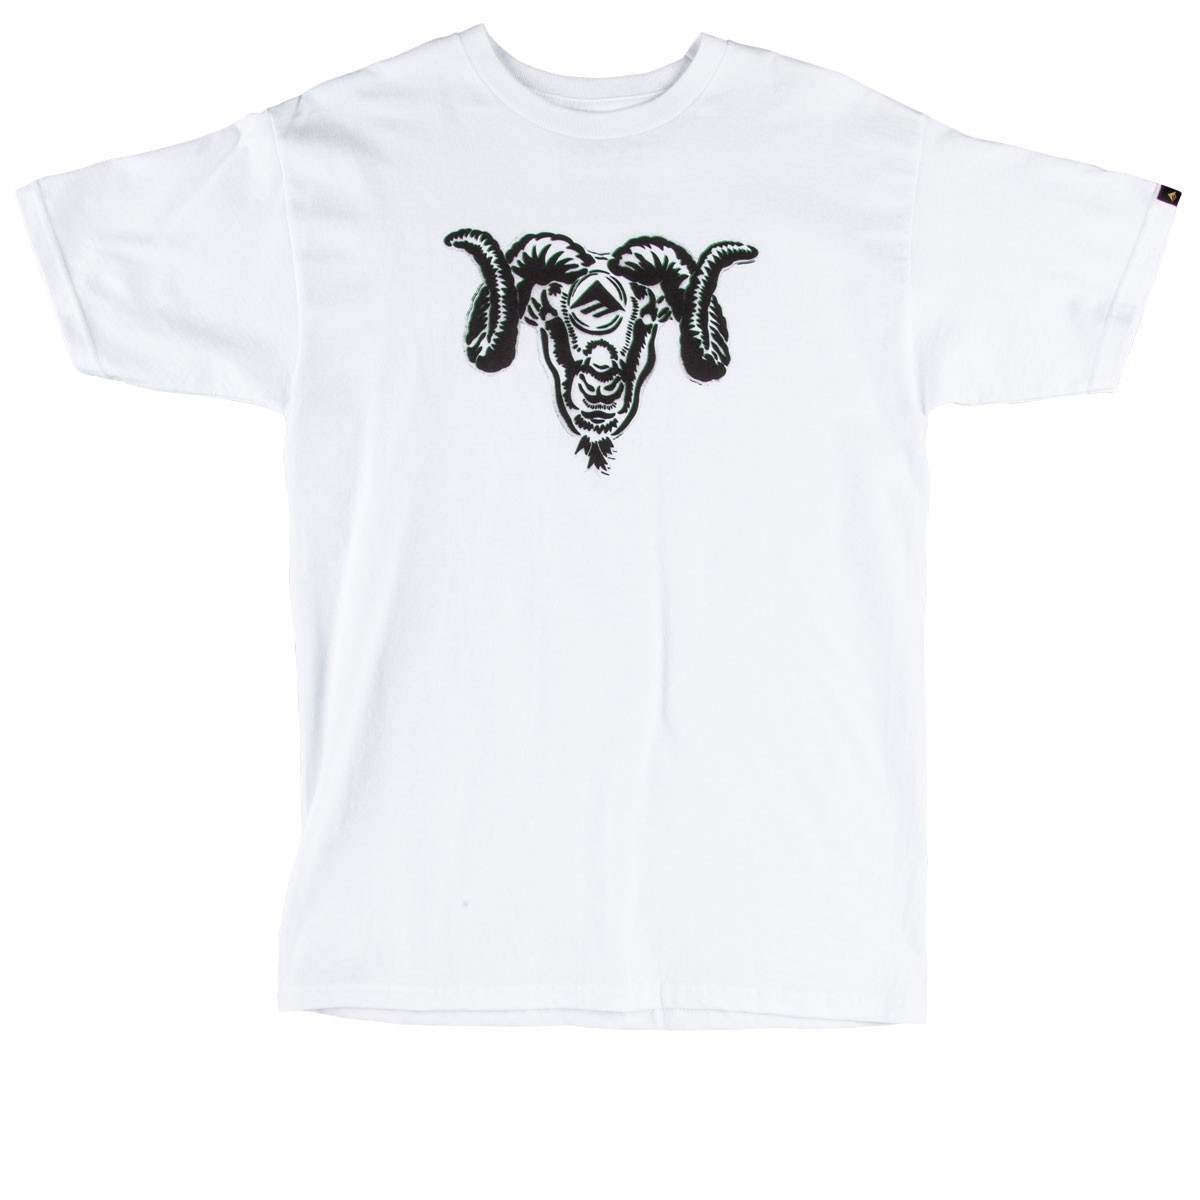 Emerica X Mouse Goathead T-Shirt - White